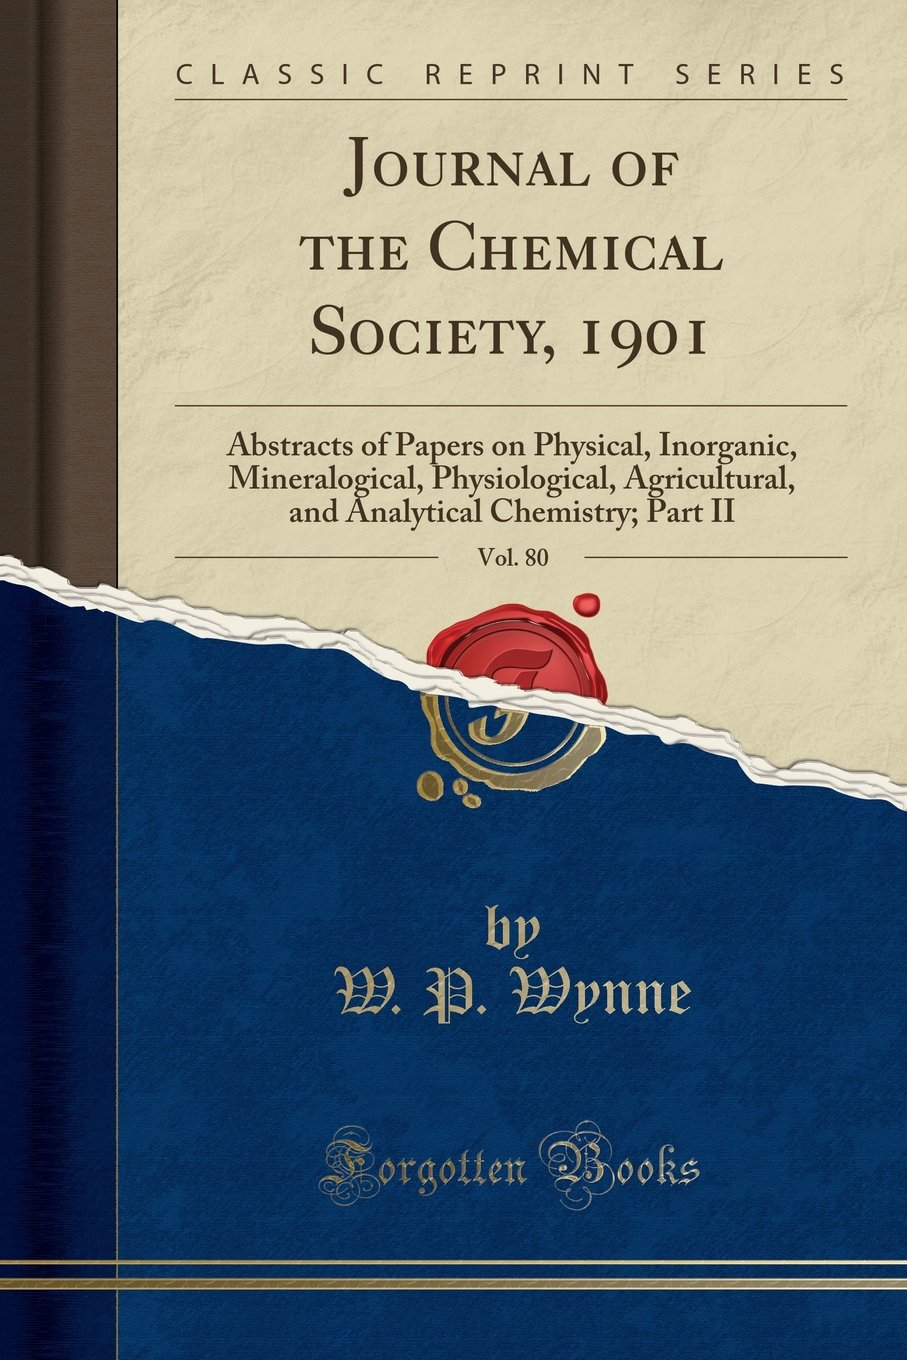 Download Journal of the Chemical Society, 1901, Vol. 80: Abstracts of Papers on Physical, Inorganic, Mineralogical, Physiological, Agricultural, and Analytical Chemistry; Part II (Classic Reprint) pdf